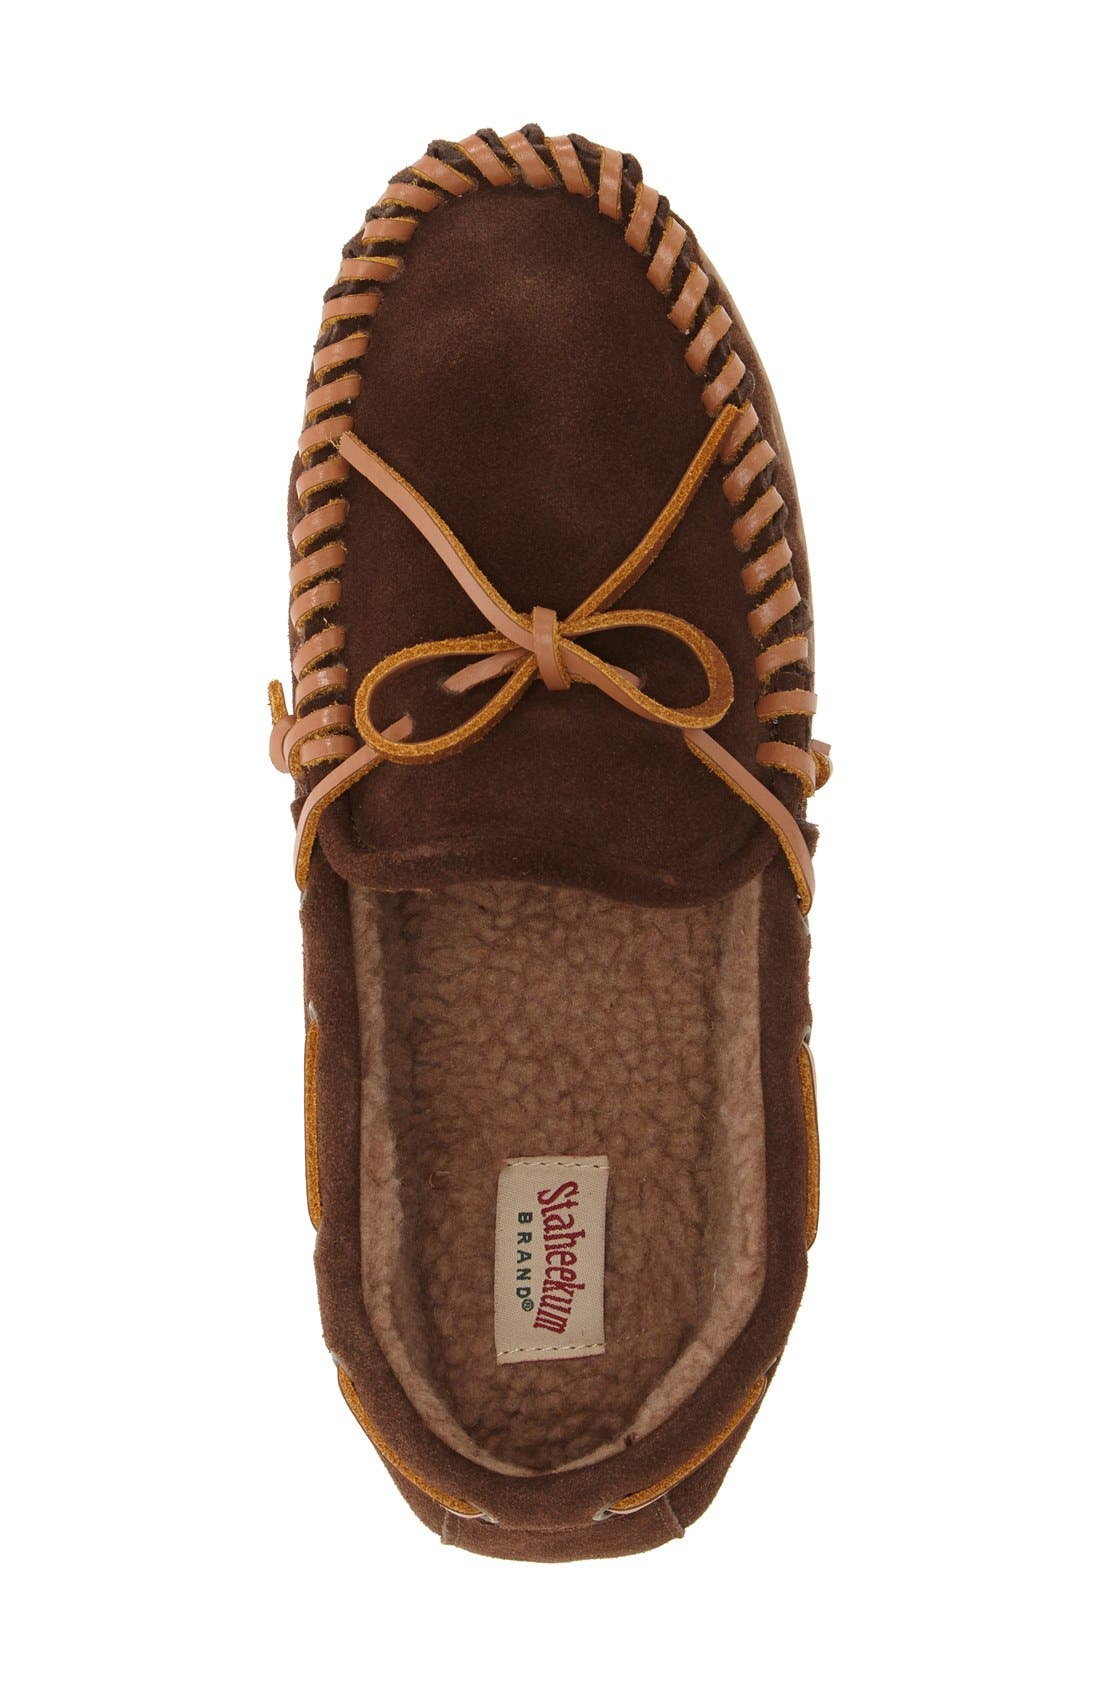 'Courier' Moccasin Slipper,                             Alternate thumbnail 2, color,                             203